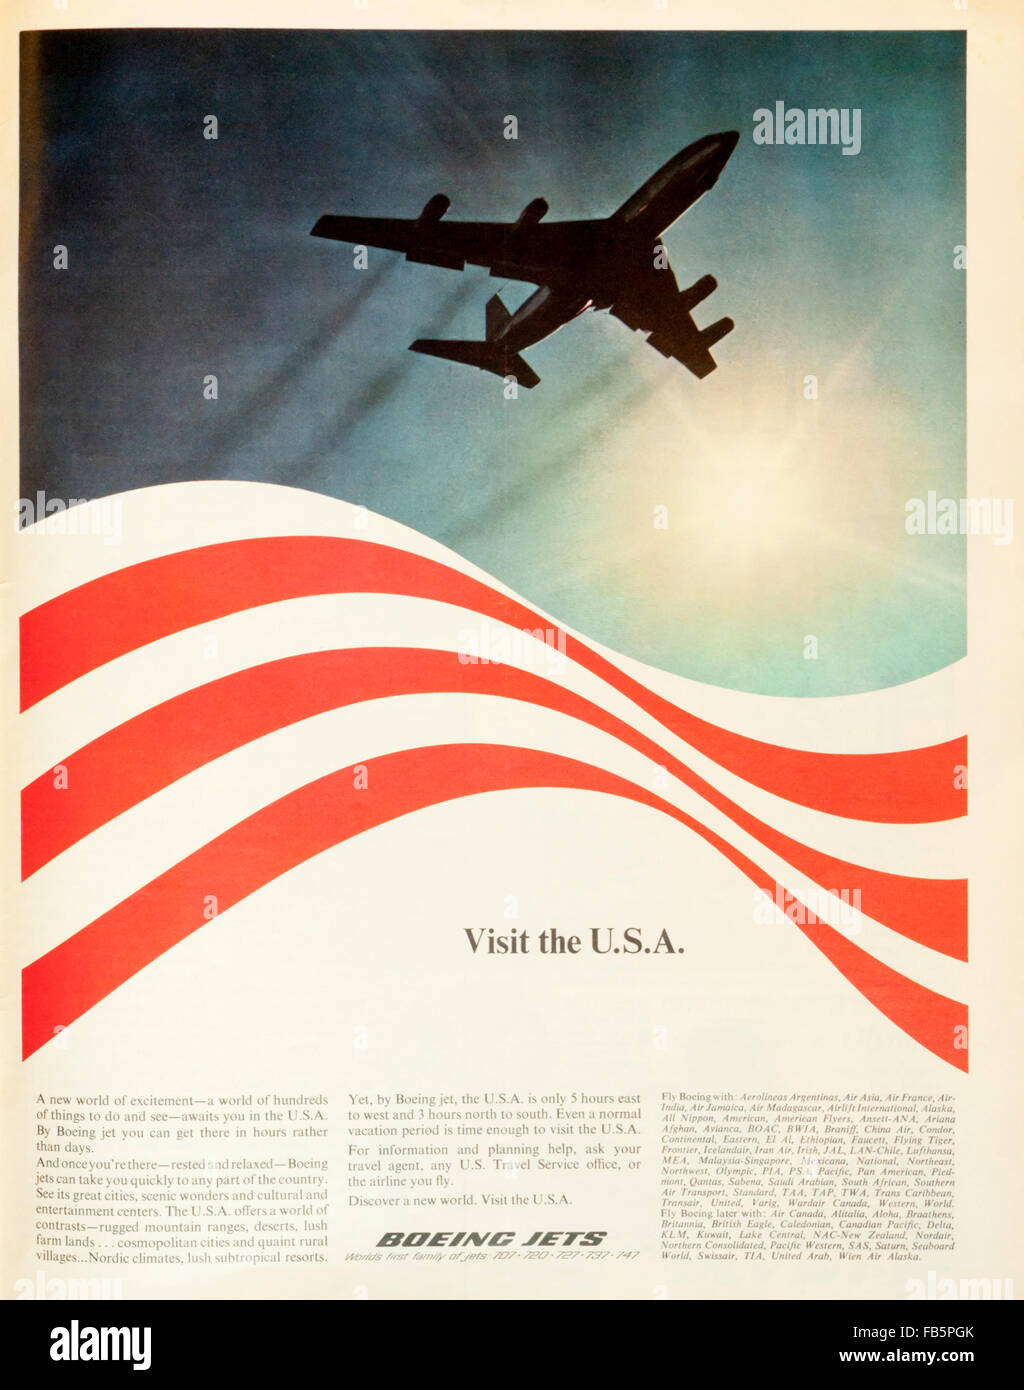 1960s Magazine Advertisement Advertising Visiting America By Boeing Stock Photo Alamy